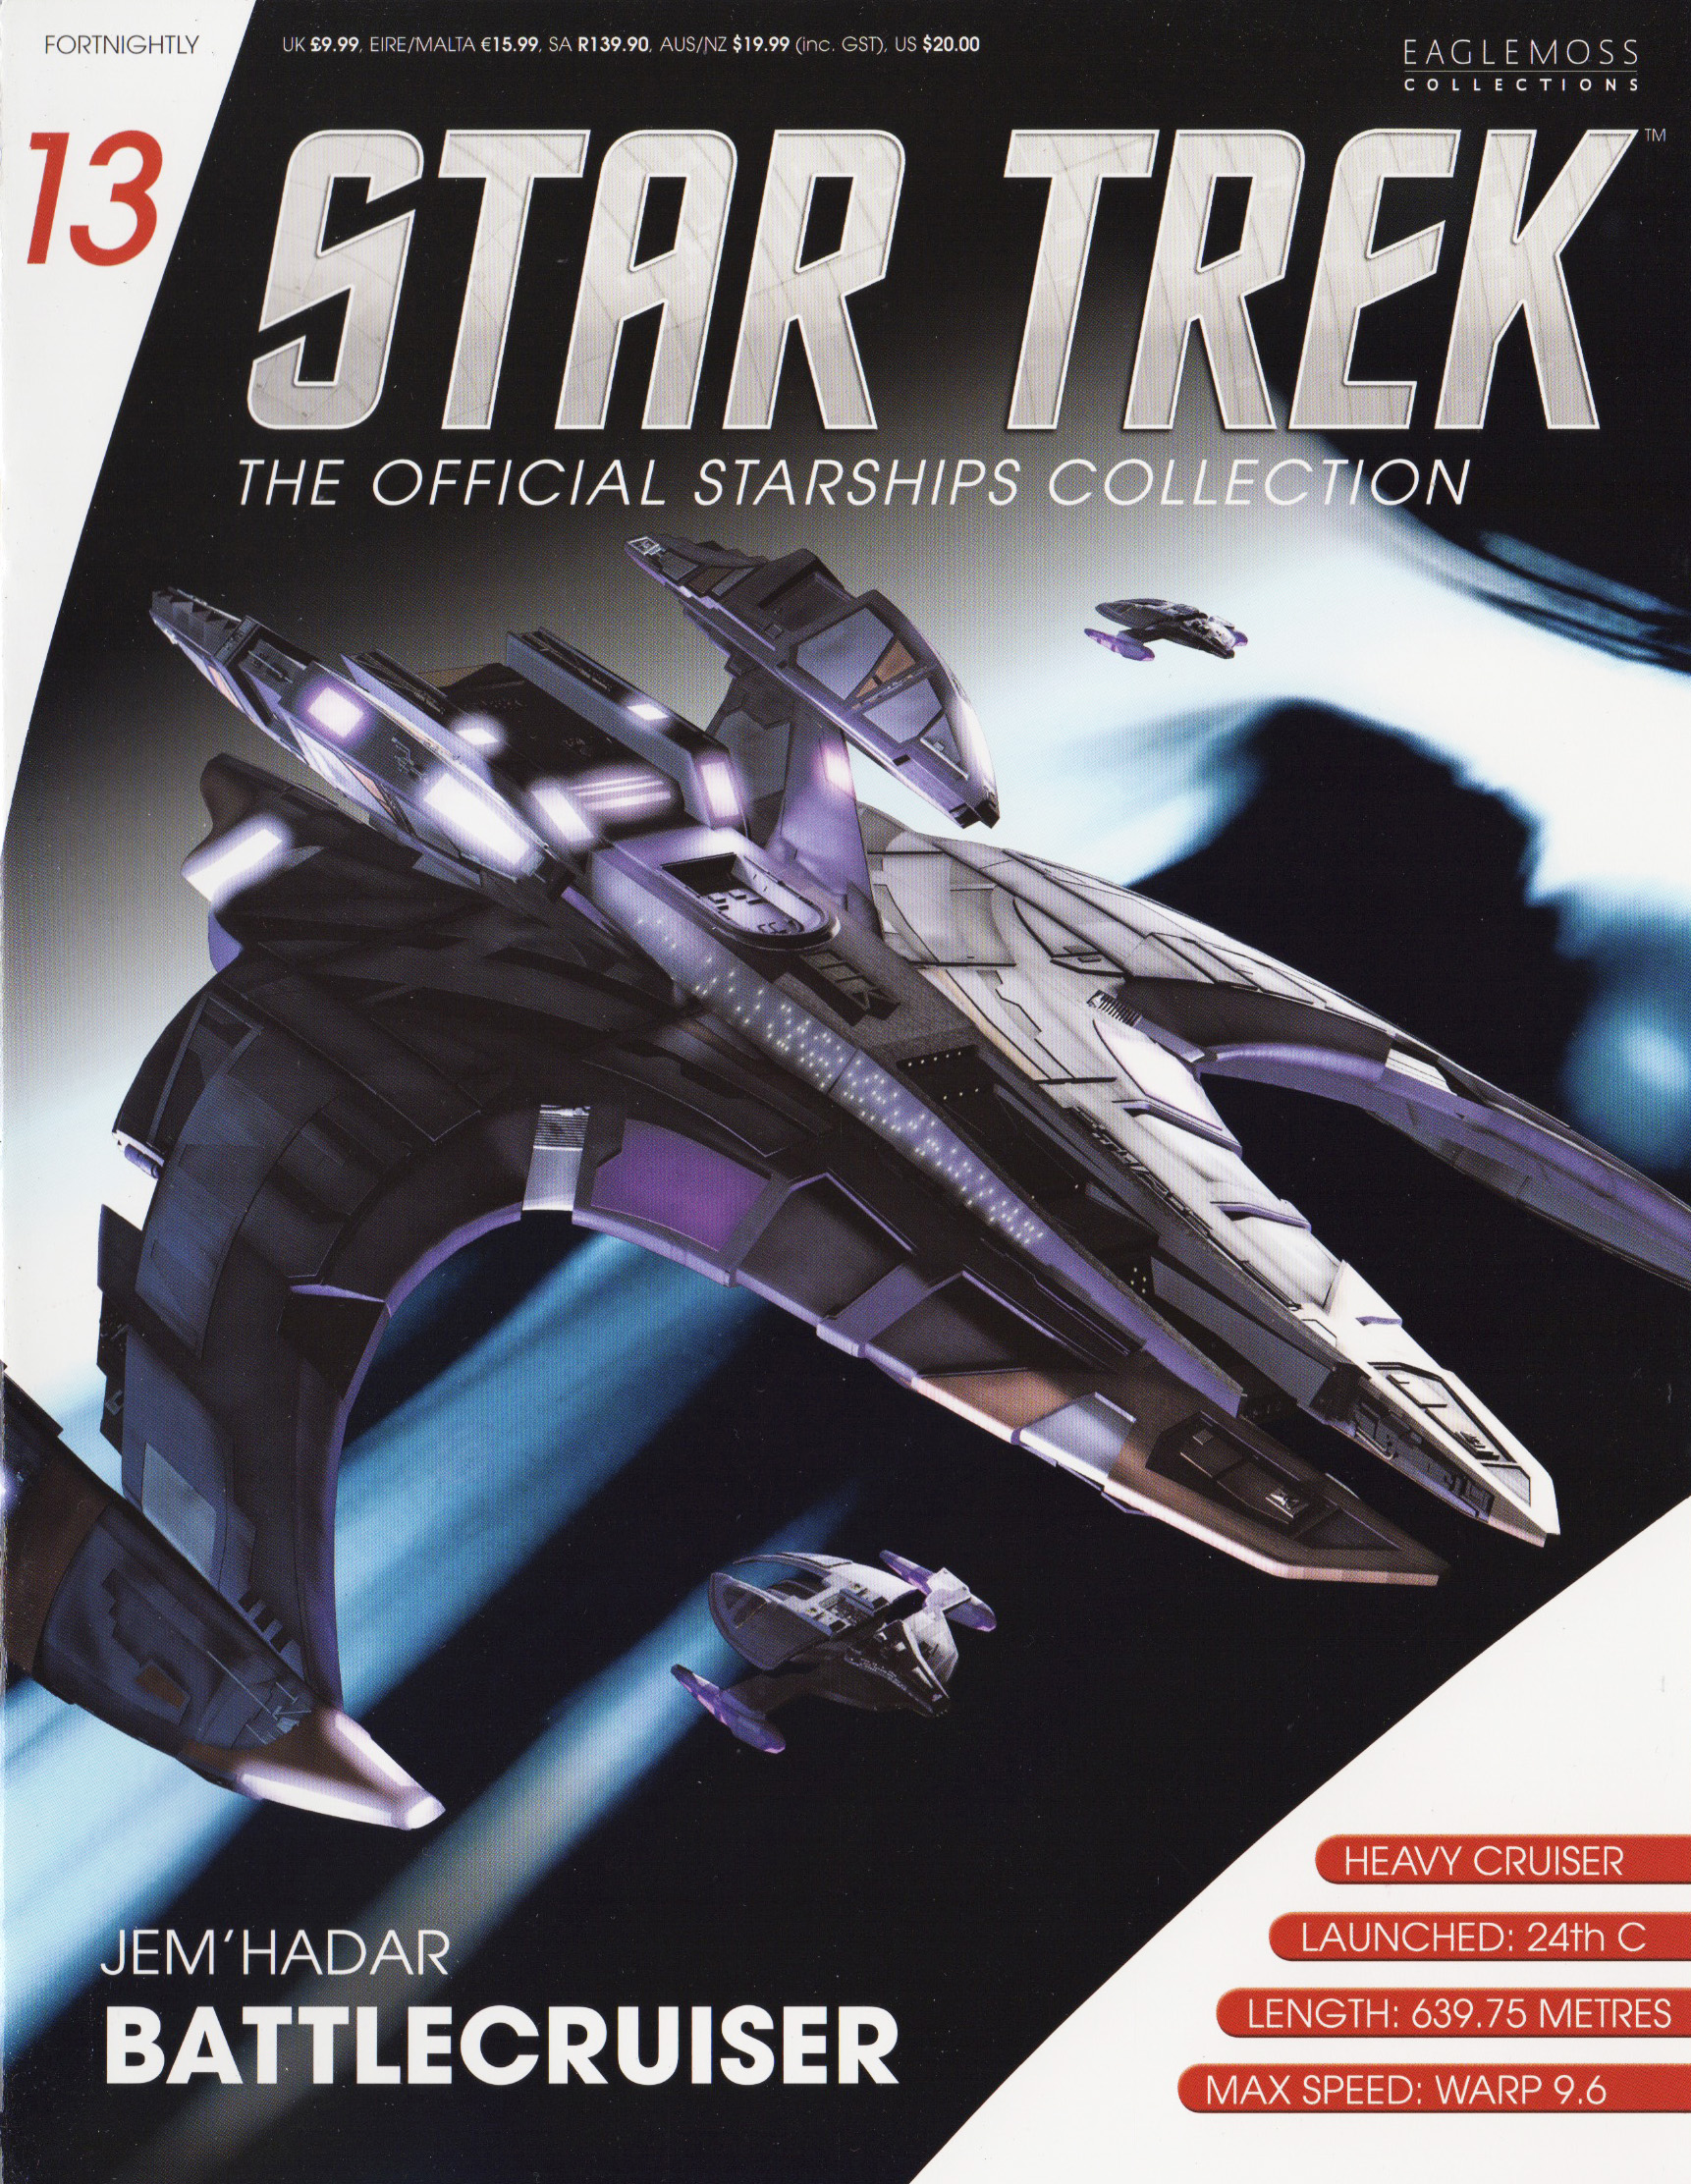 Eaglemoss Star Trek Starships Issue 13